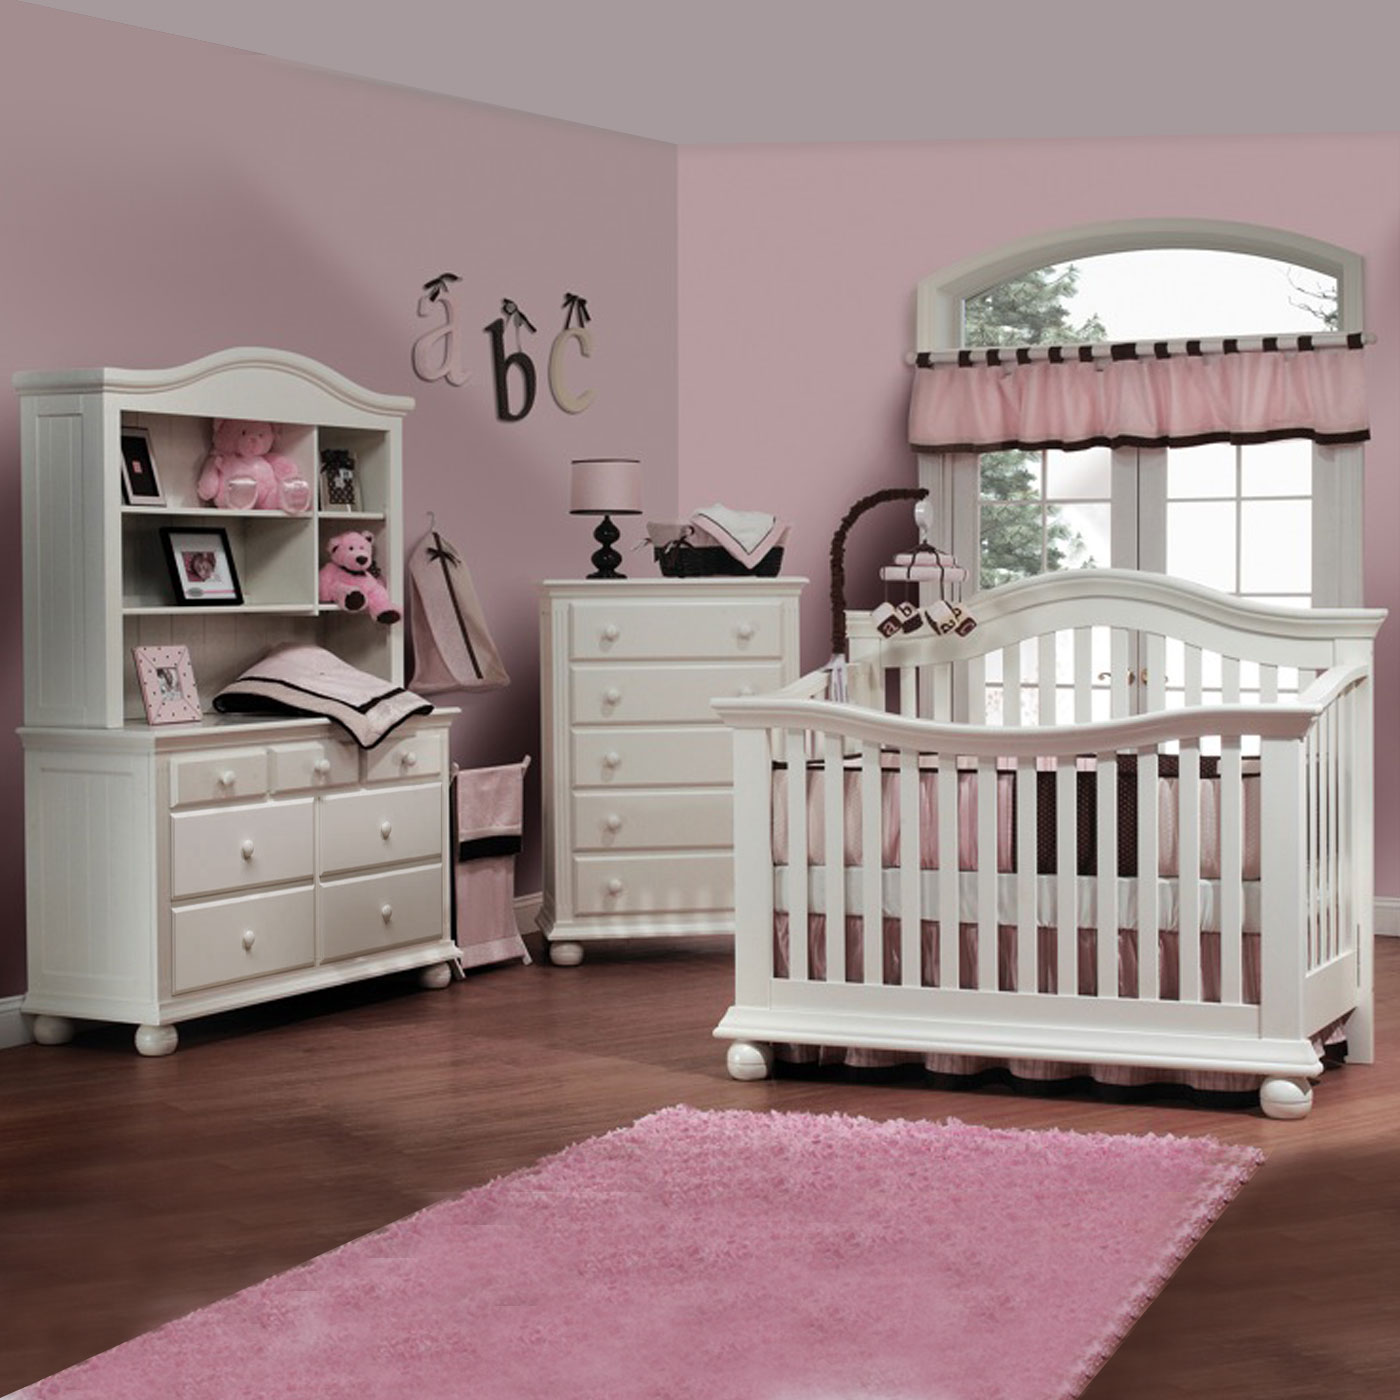 Sorelle Vista 4 Piece Nursery Set   Couture Convertible Crib, Double Dresser,  Hutch And 5 Drawer Dresser In French White FREE SHIPPING